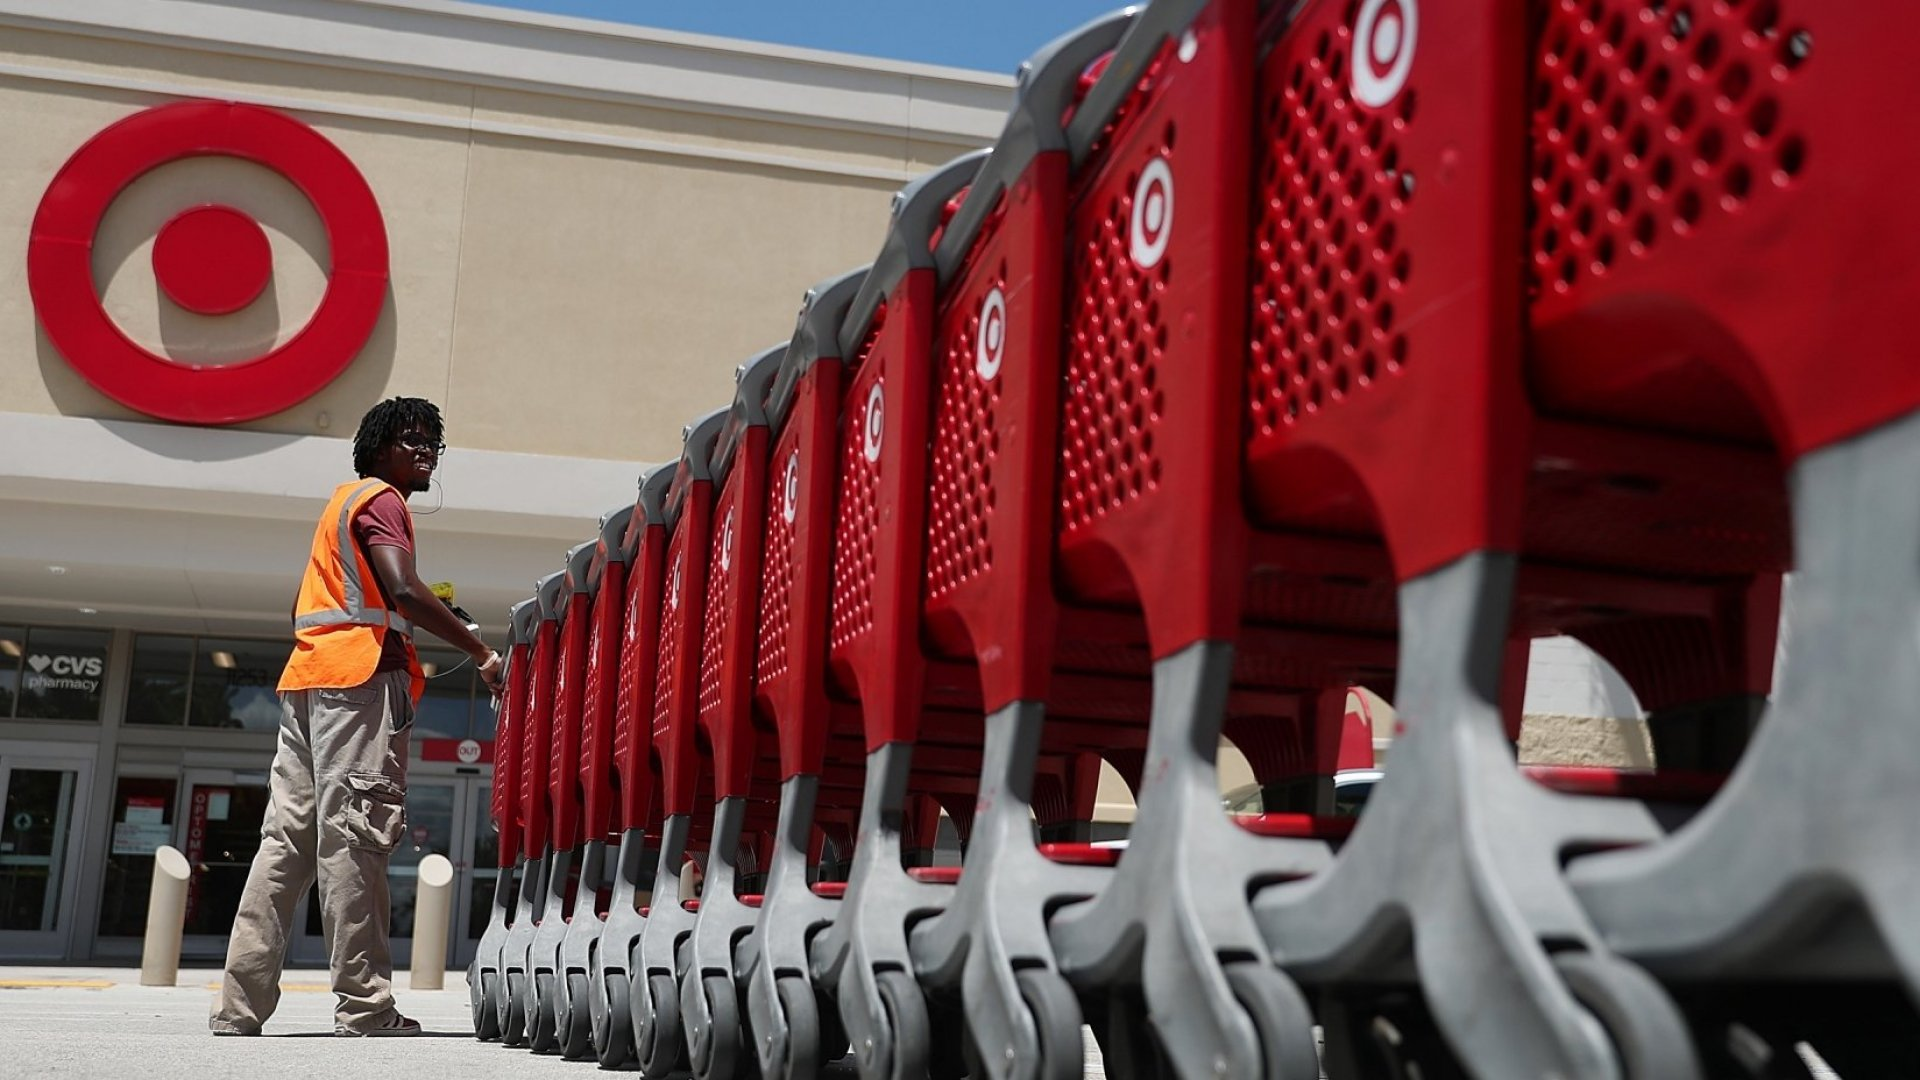 Target, Best Buy and More Than 380 Other Companies Are Giving Employees Time Off to Vote. Will Your Business Join Them?